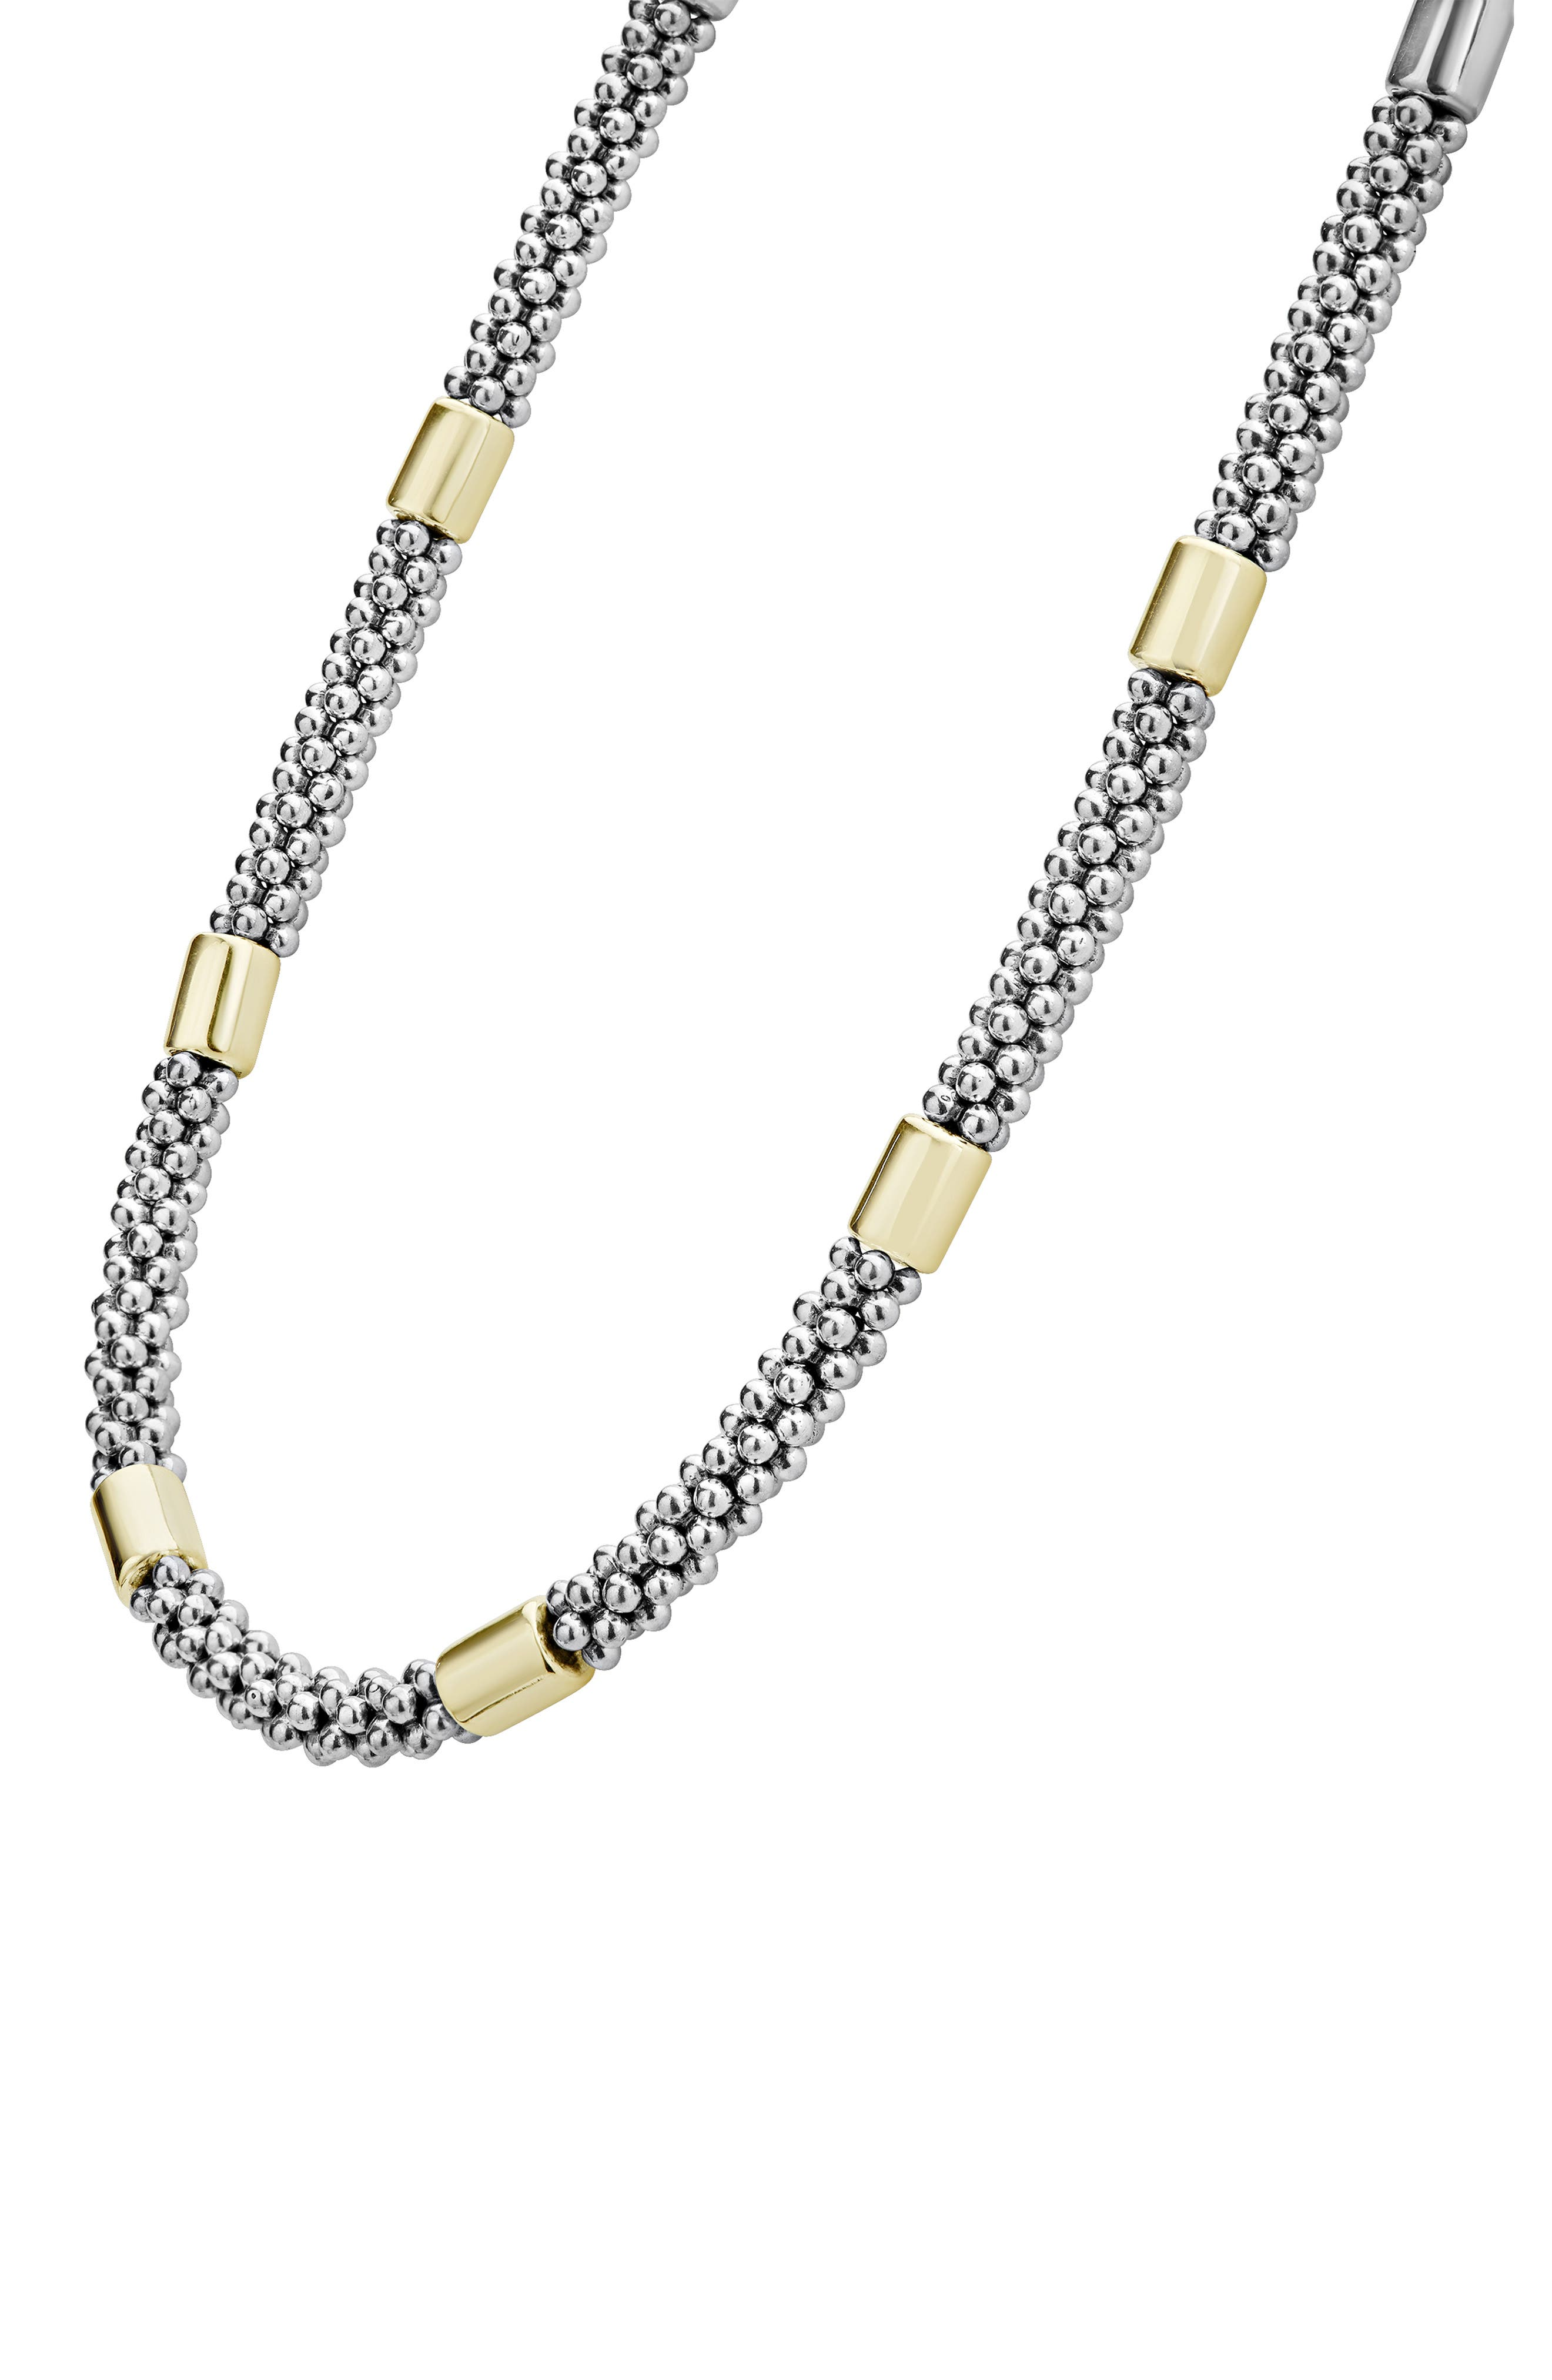 Caviar Rope Collar Necklace,                             Alternate thumbnail 4, color,                             SILVER/ GOLD